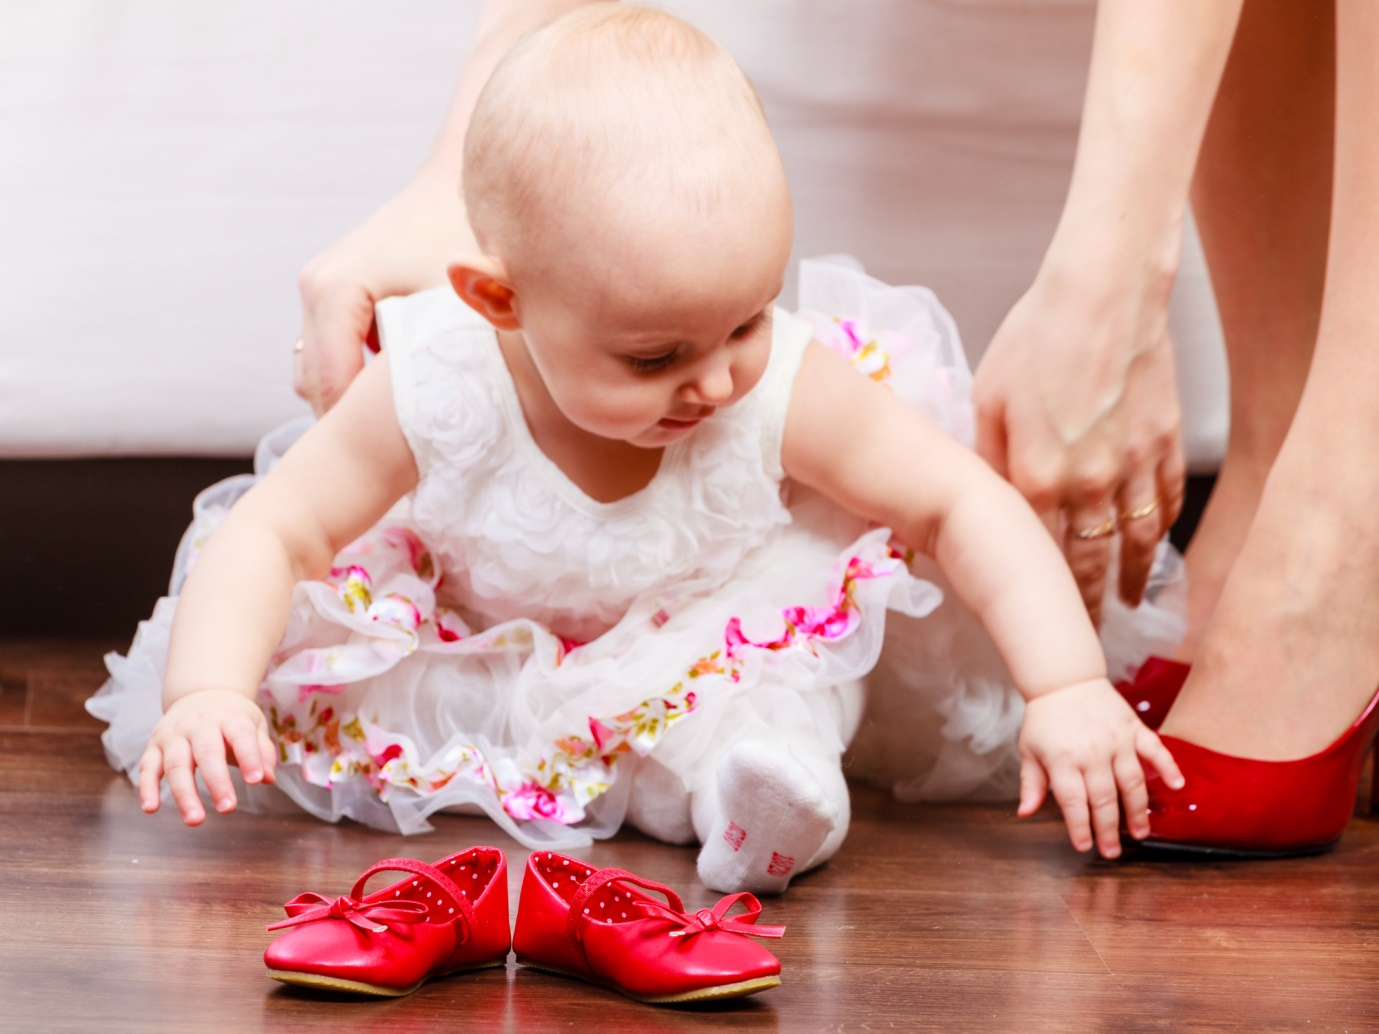 Baby Clothes Shopping: 6 Factors to Consider for New Parents